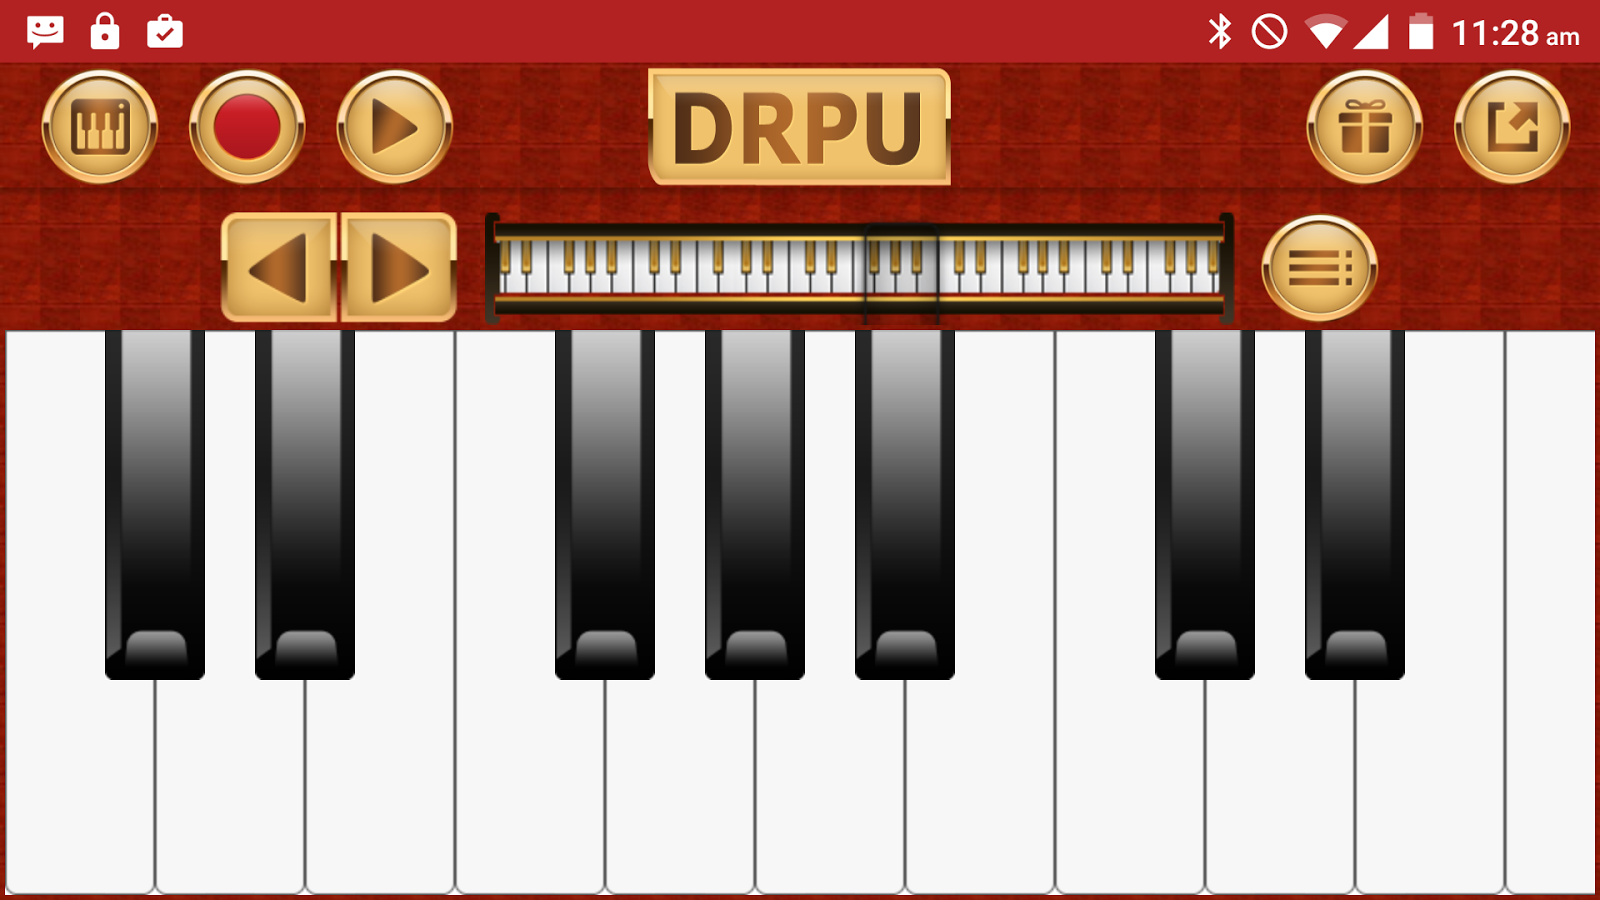 Piano Keyboard Music Pro Screenshot 0